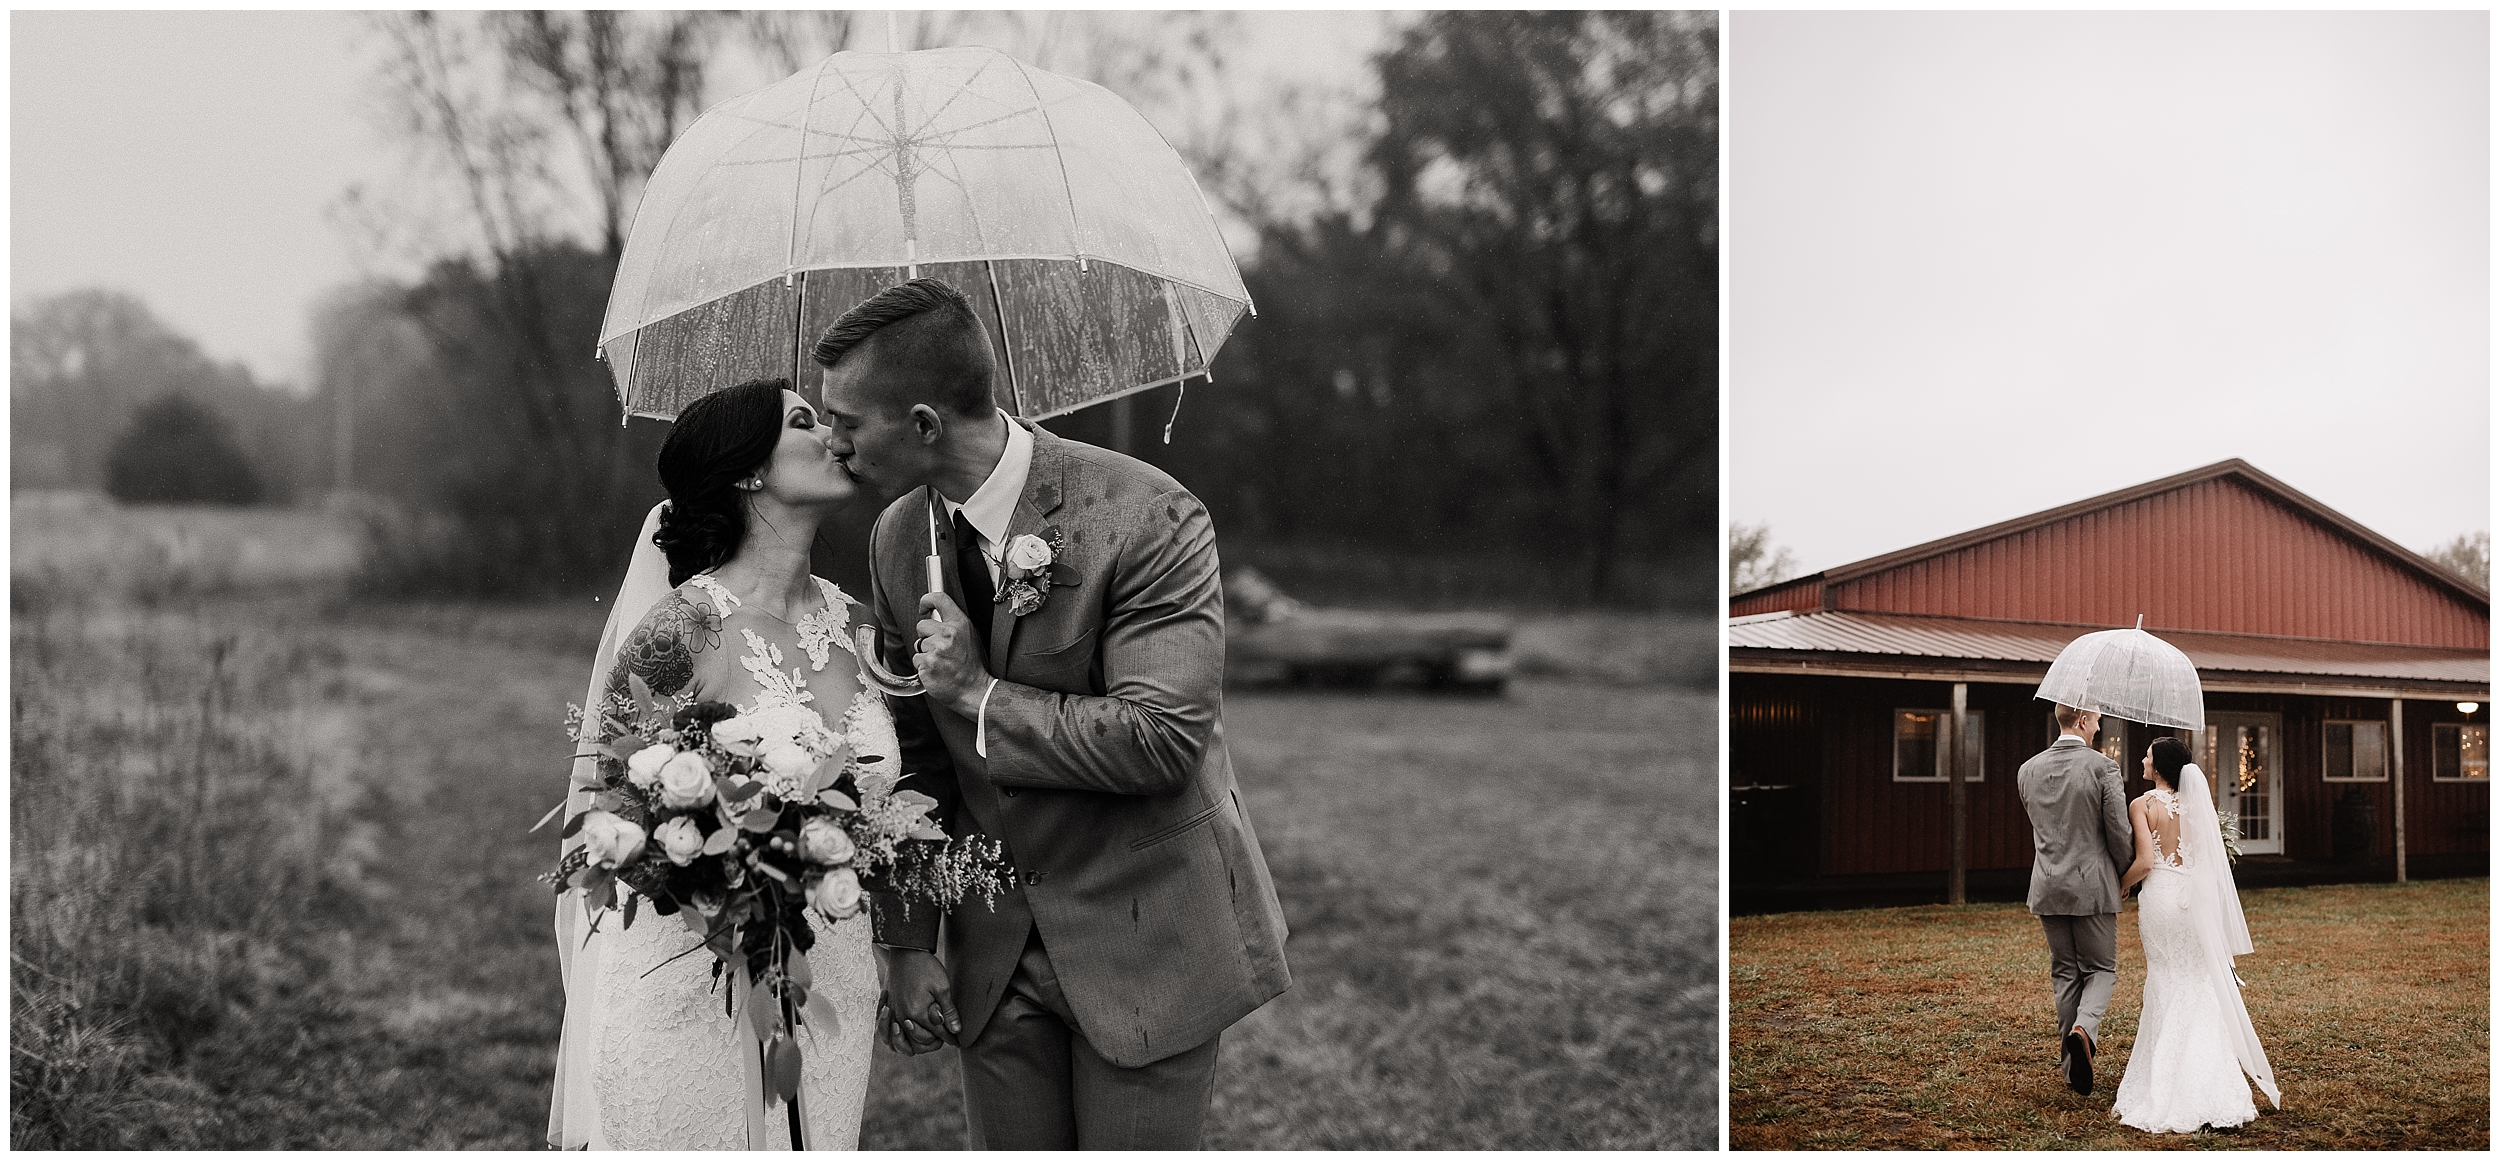 oklahoma wedding photography first look bride groom wedding day sweet rustic timbers outdoor viola kansas overcast rain umbrella clear black white black&white